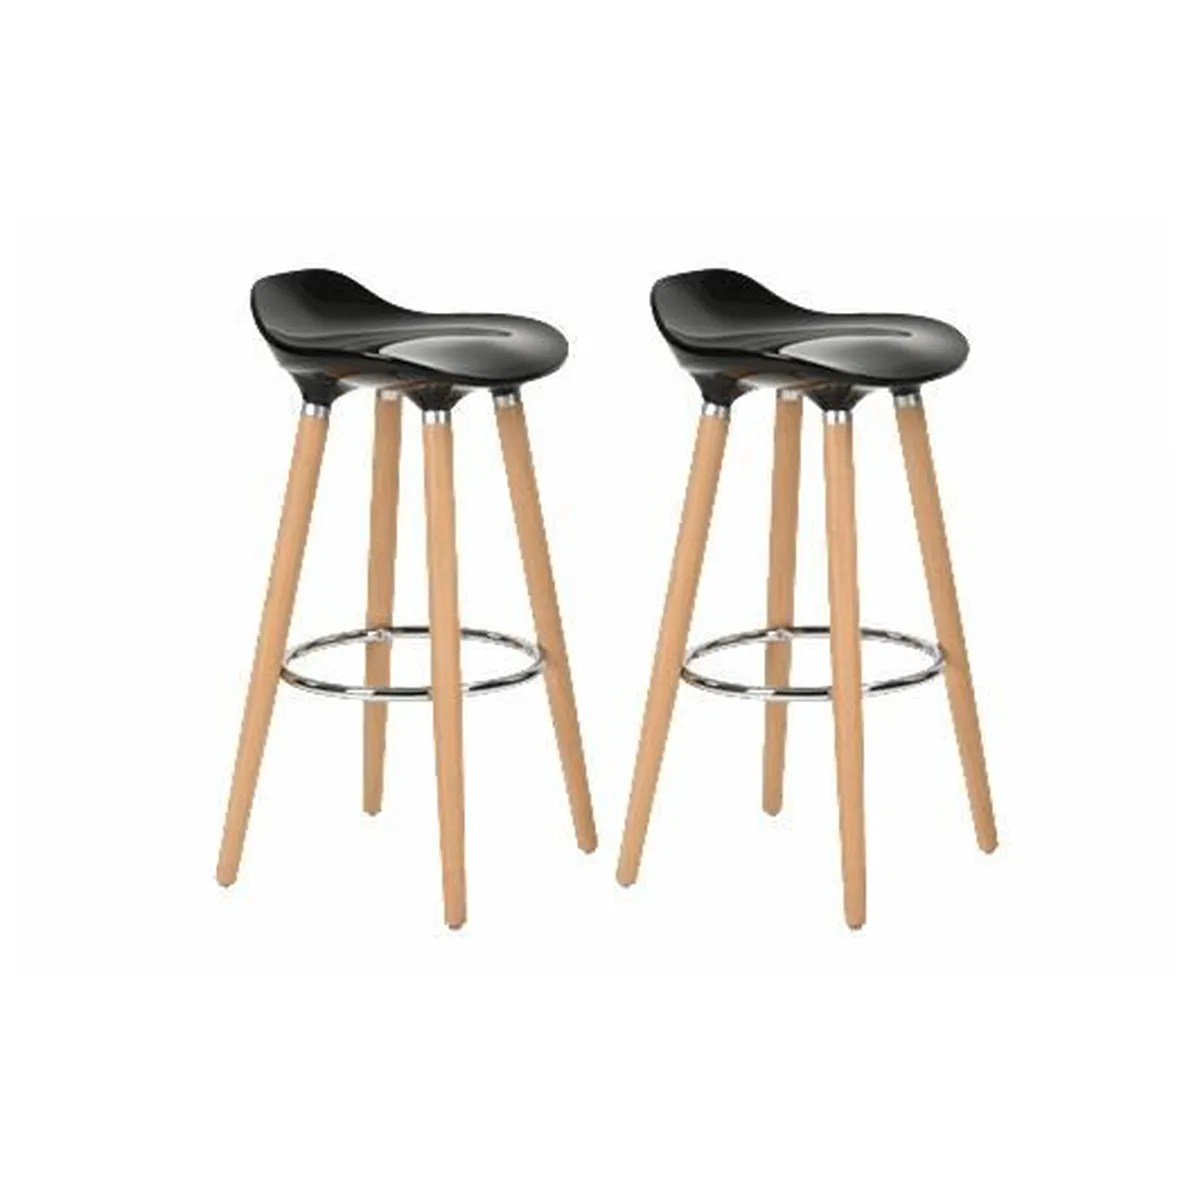 Tabourets Chaises Furniturer Lot De 4 Tabourets De Bar Cuisine Scandinaves Chaises